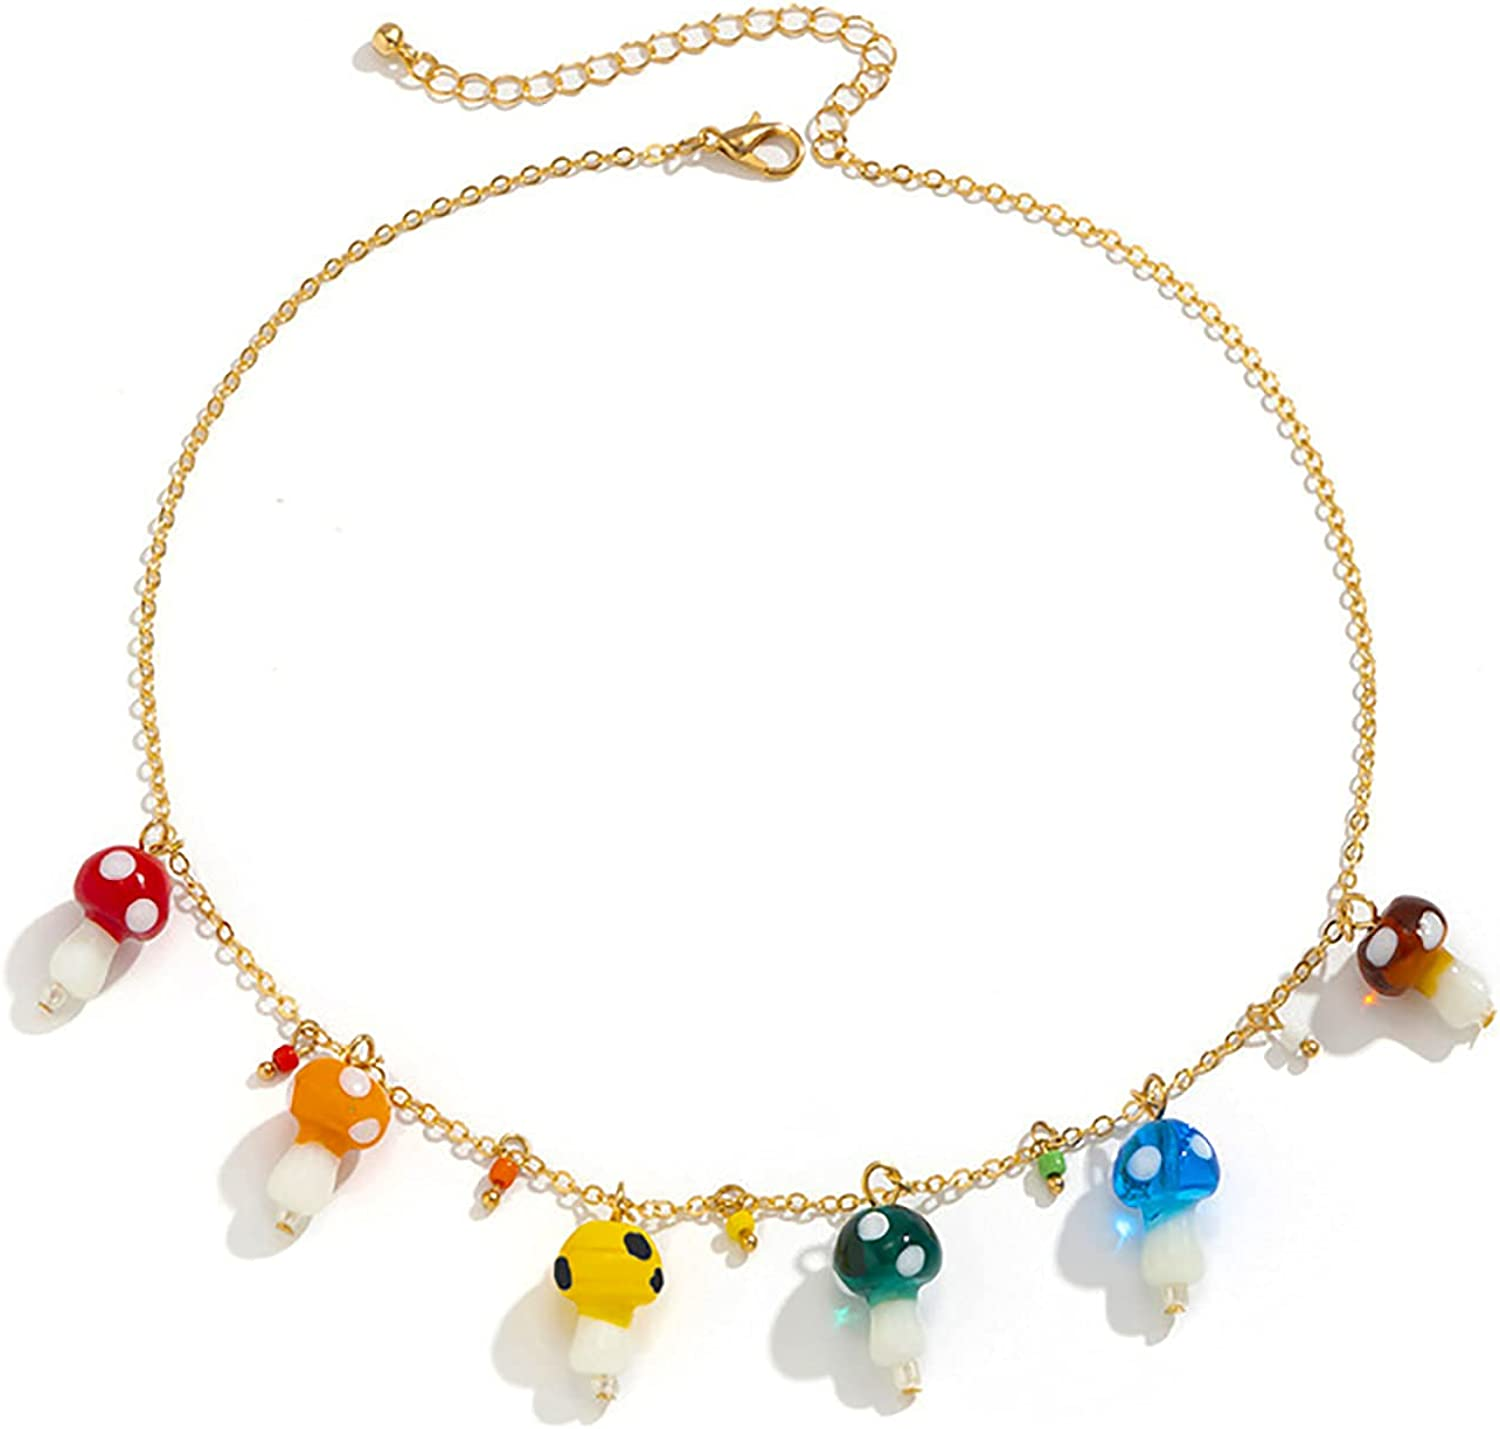 yfstyle Beaded Necklaces for Women Yin Yang Fruit Star Colorful Bead Necklace Smiley Face Pearl Necklaces for Women Girls Mushroom Necklace with Heart Dice Flower Charms Y2K Jewelry Gift